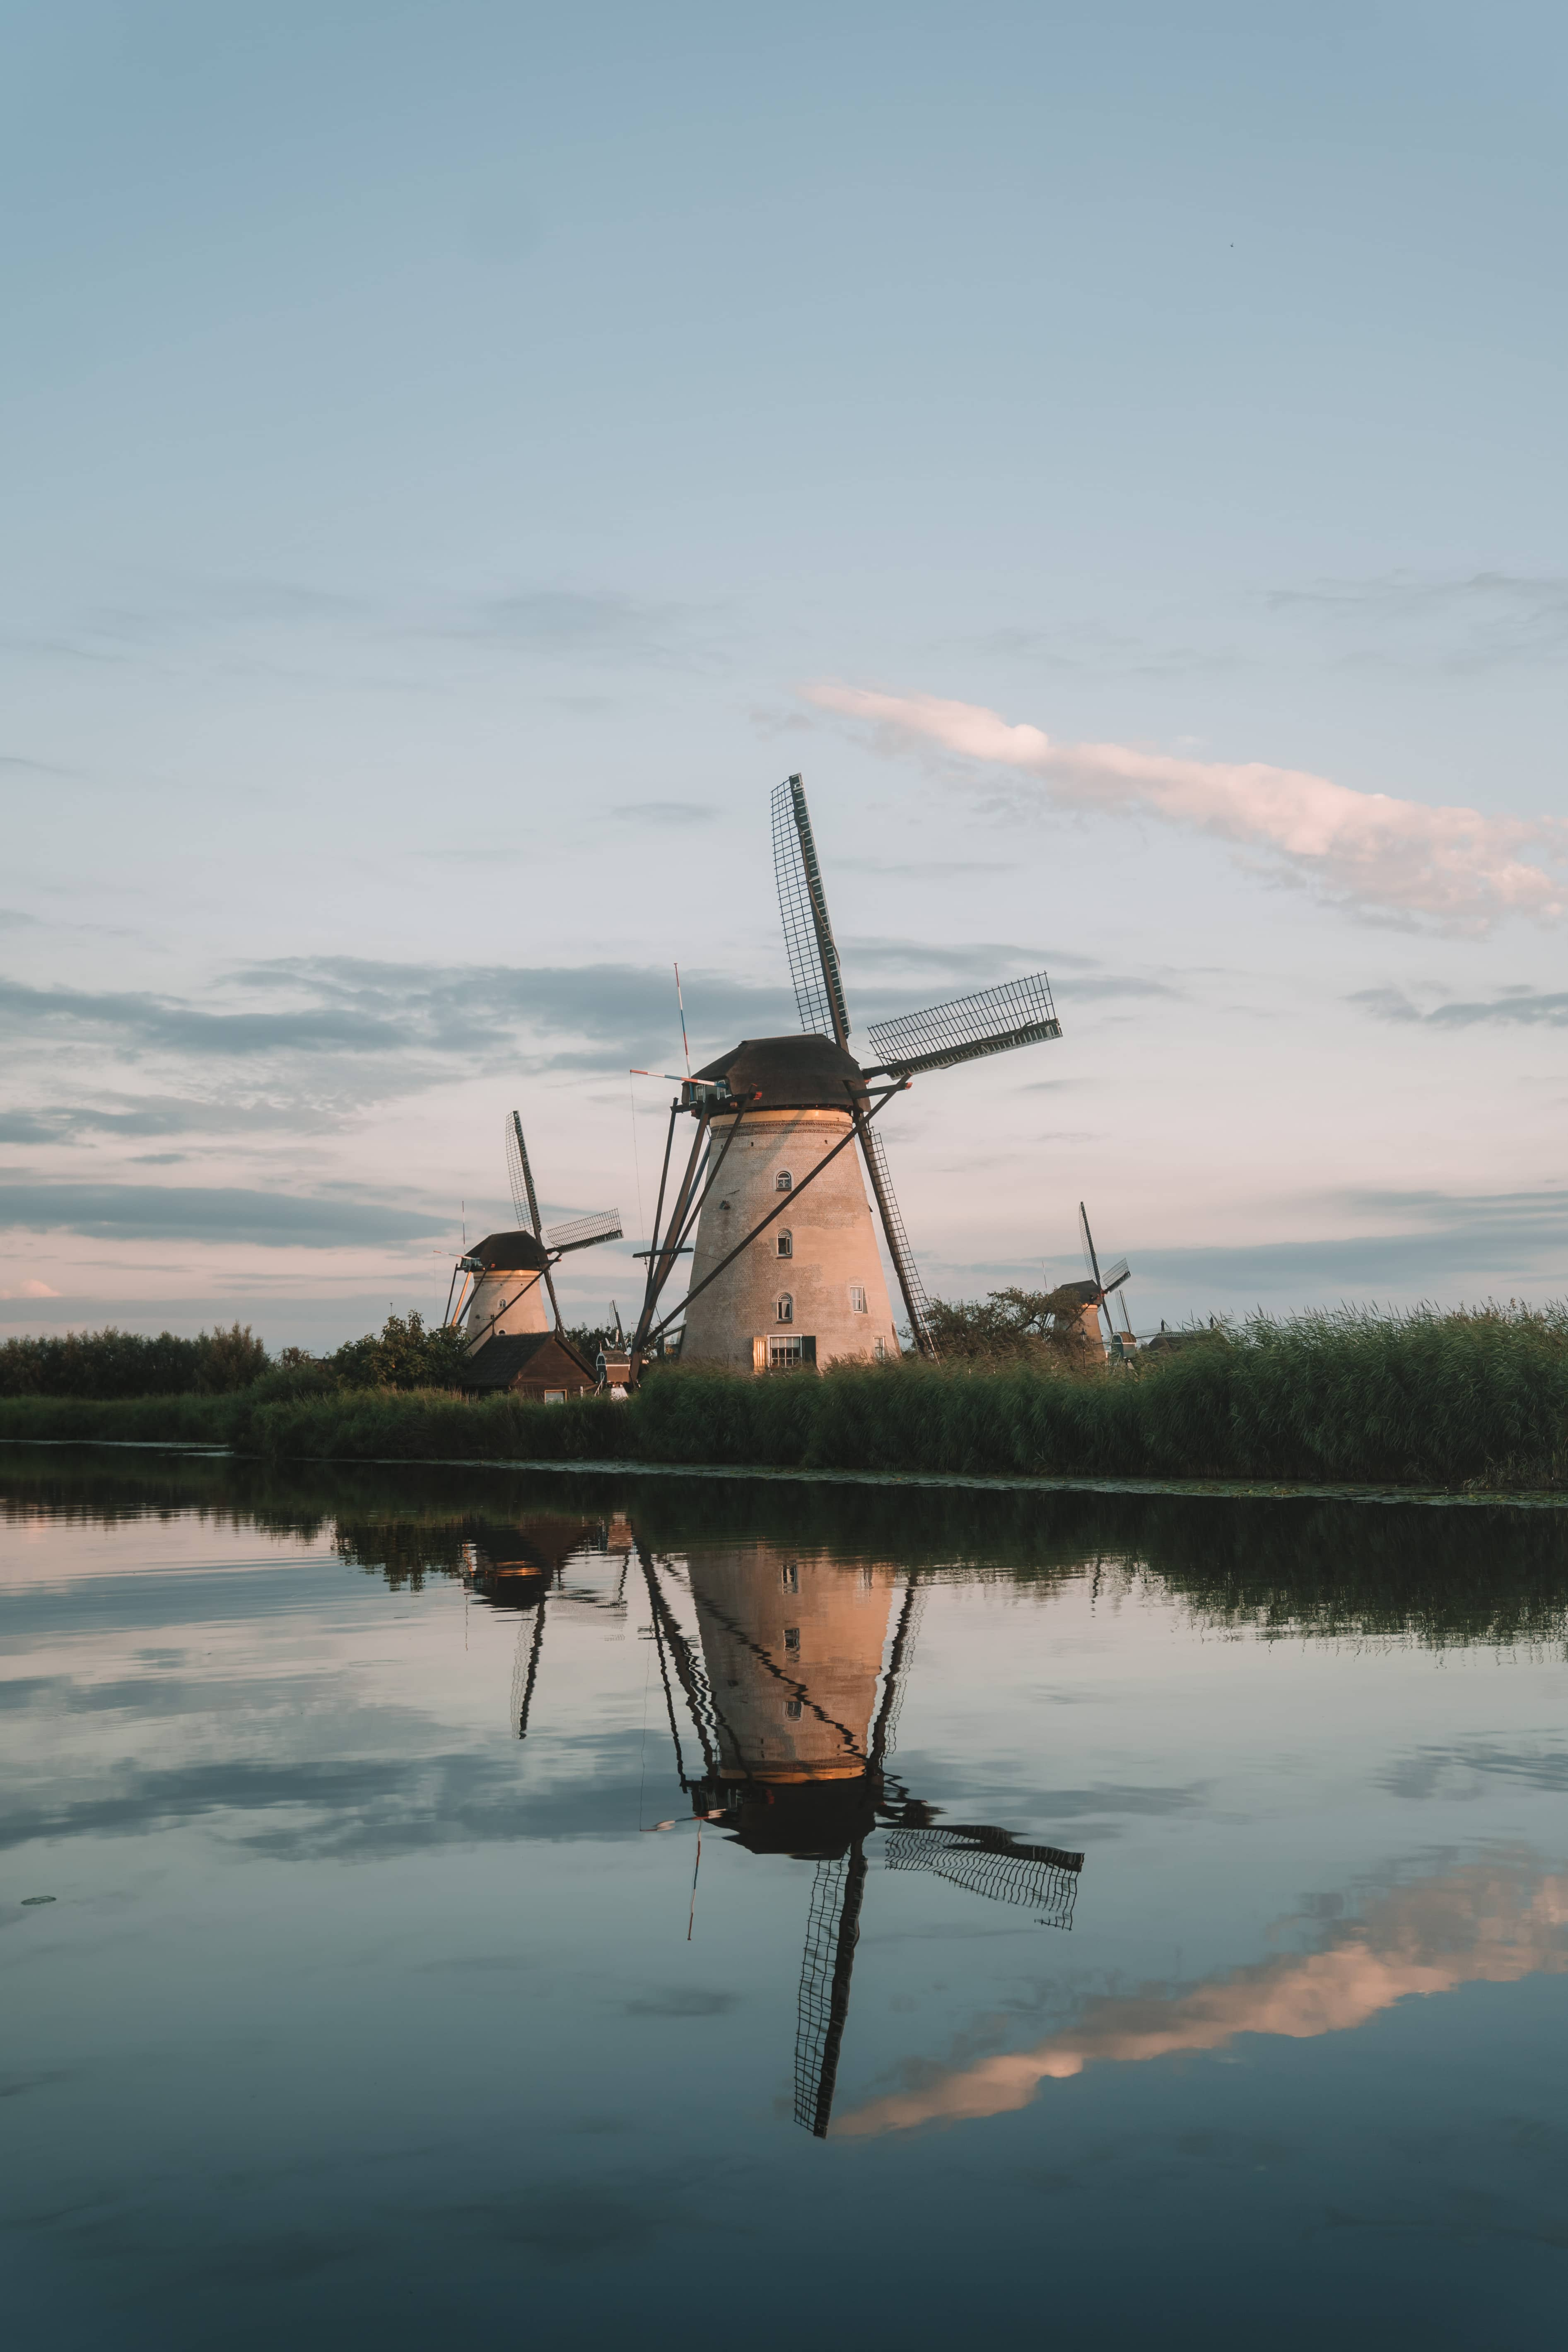 Kinderdjik windmill in Netherlands reflecting in the river while sunset